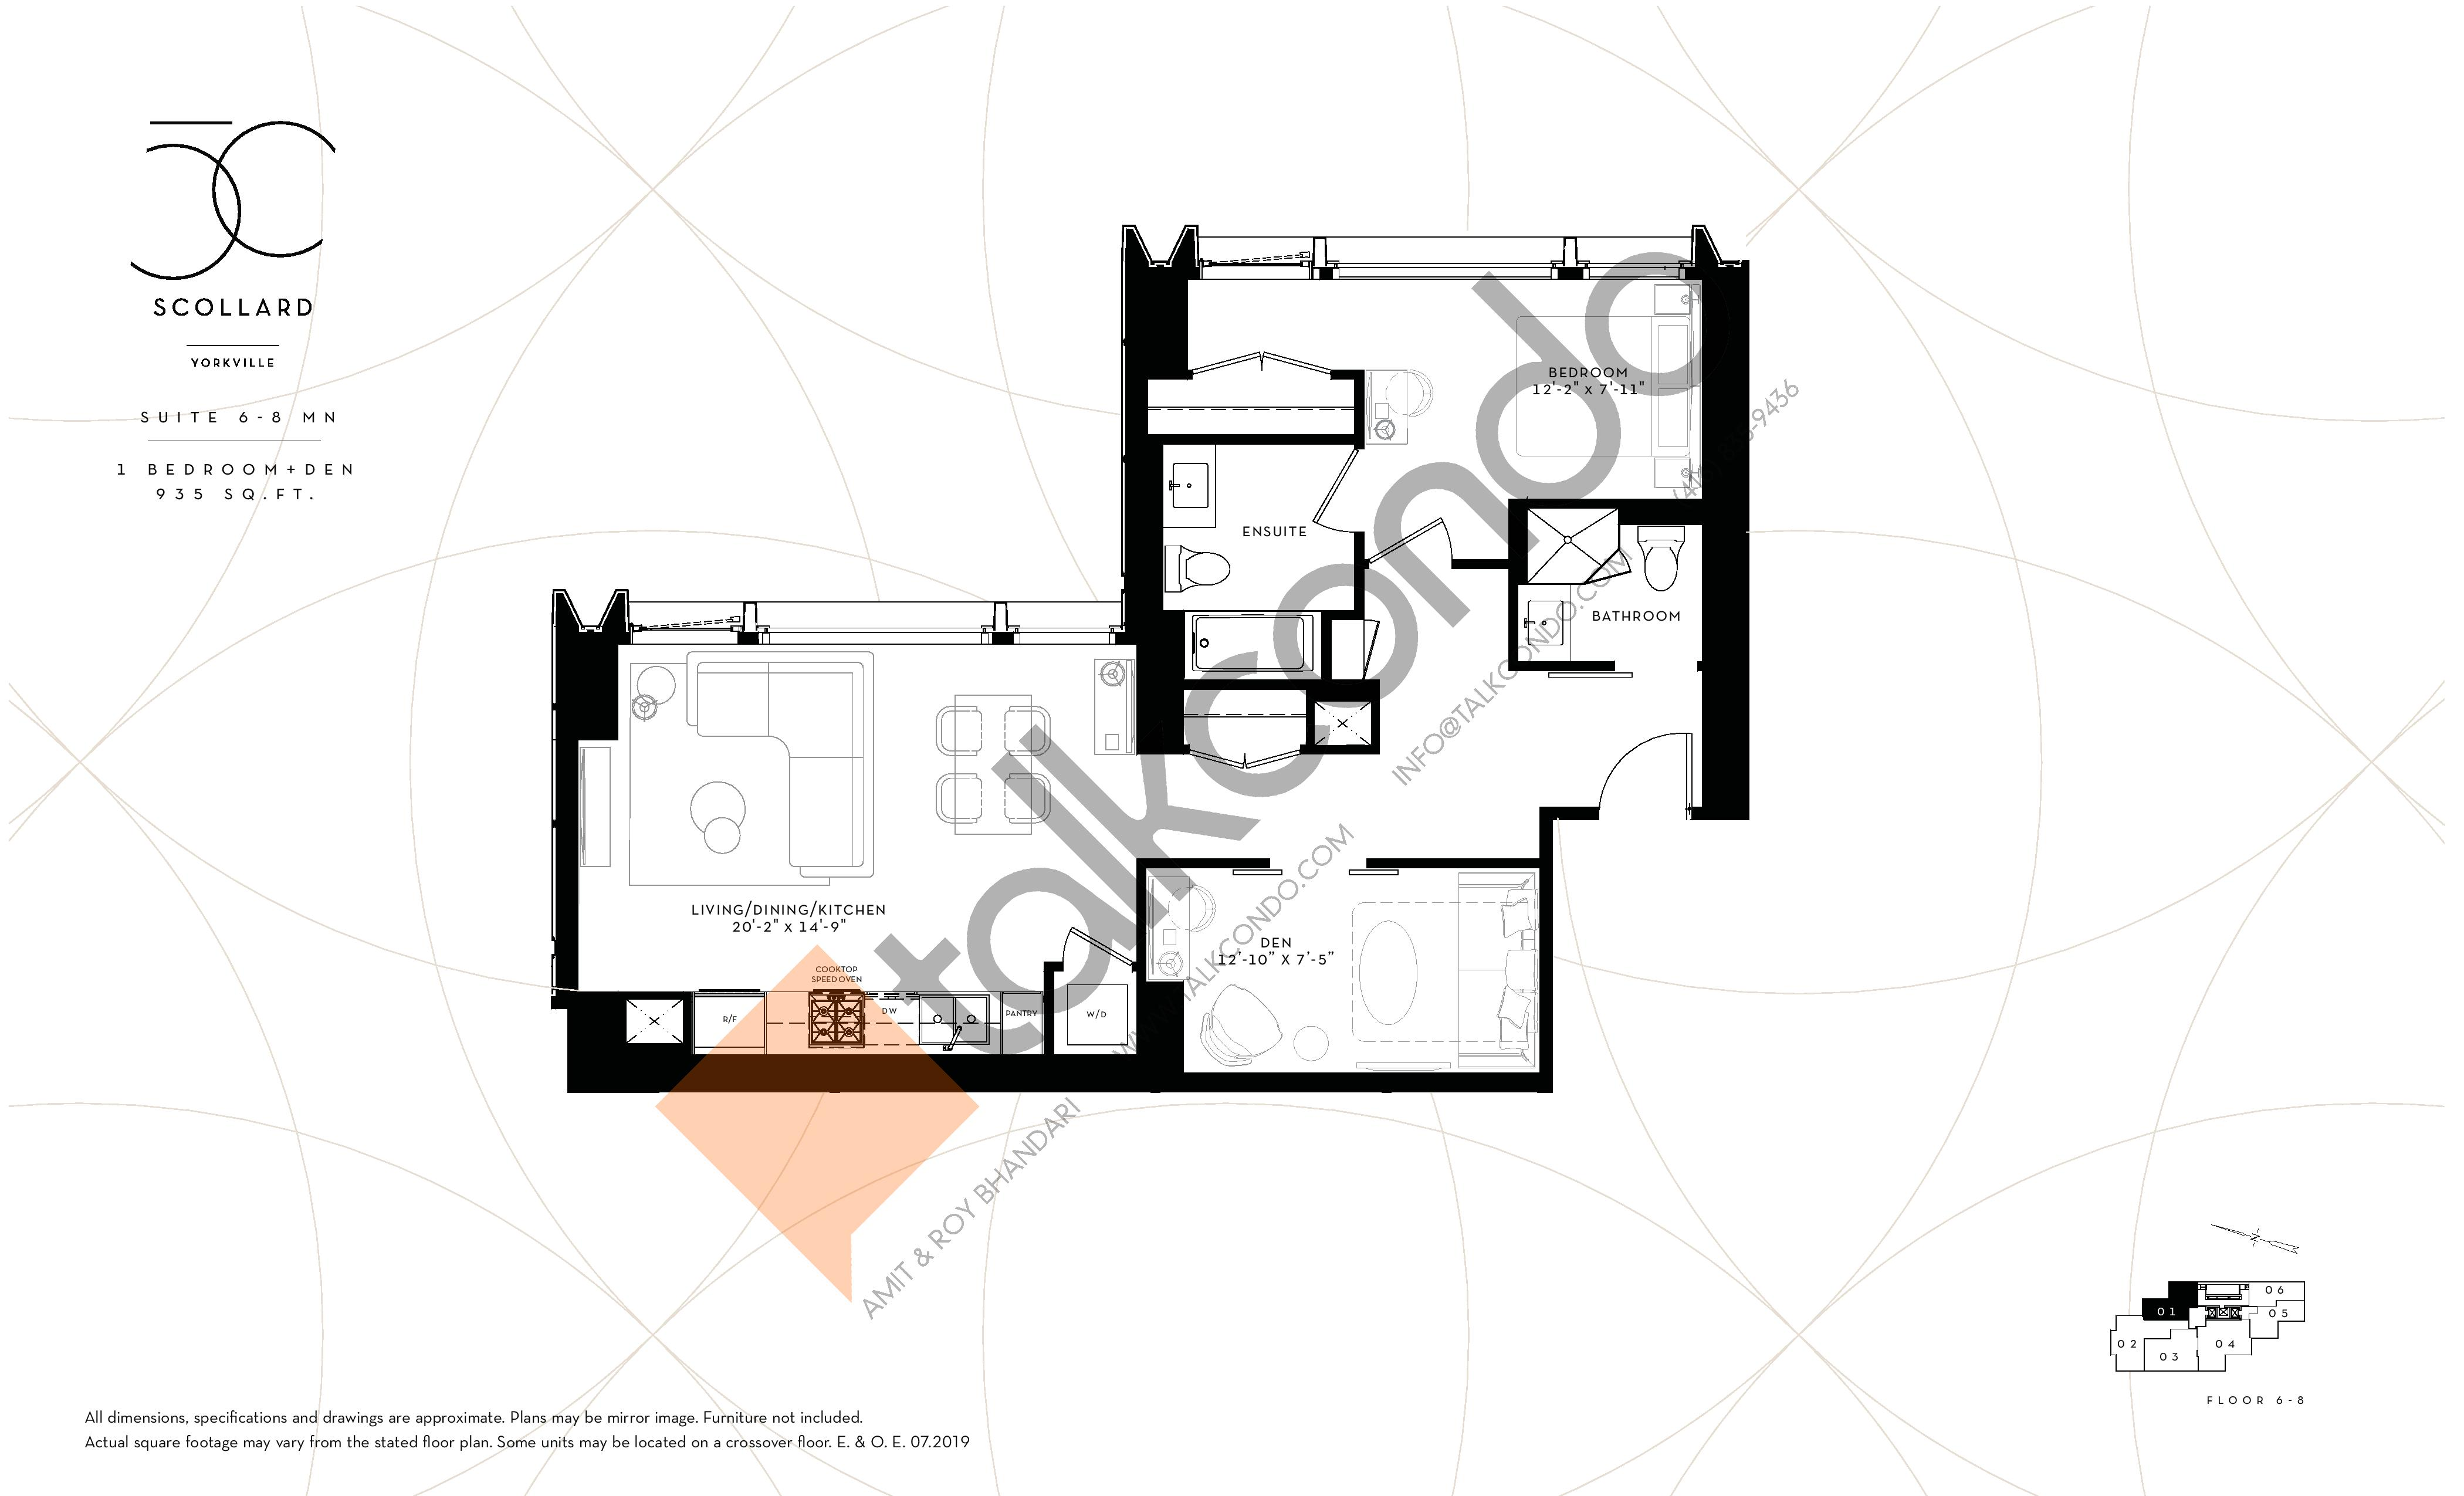 Suite 6-8 MN Floor Plan at Fifty Scollard Condos - 935 sq.ft